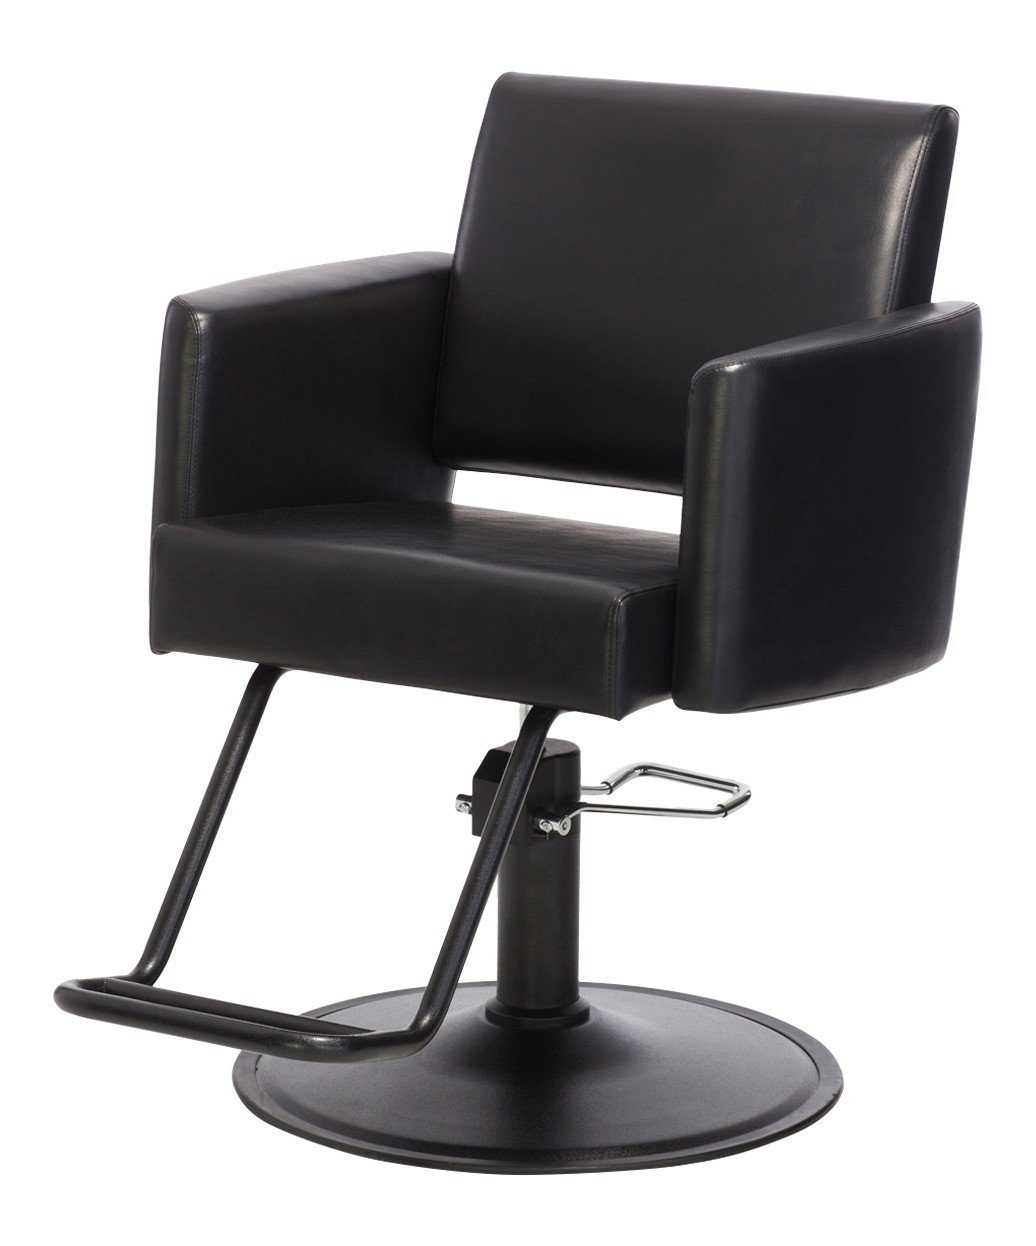 BR Beauty Onyx Styling Chair